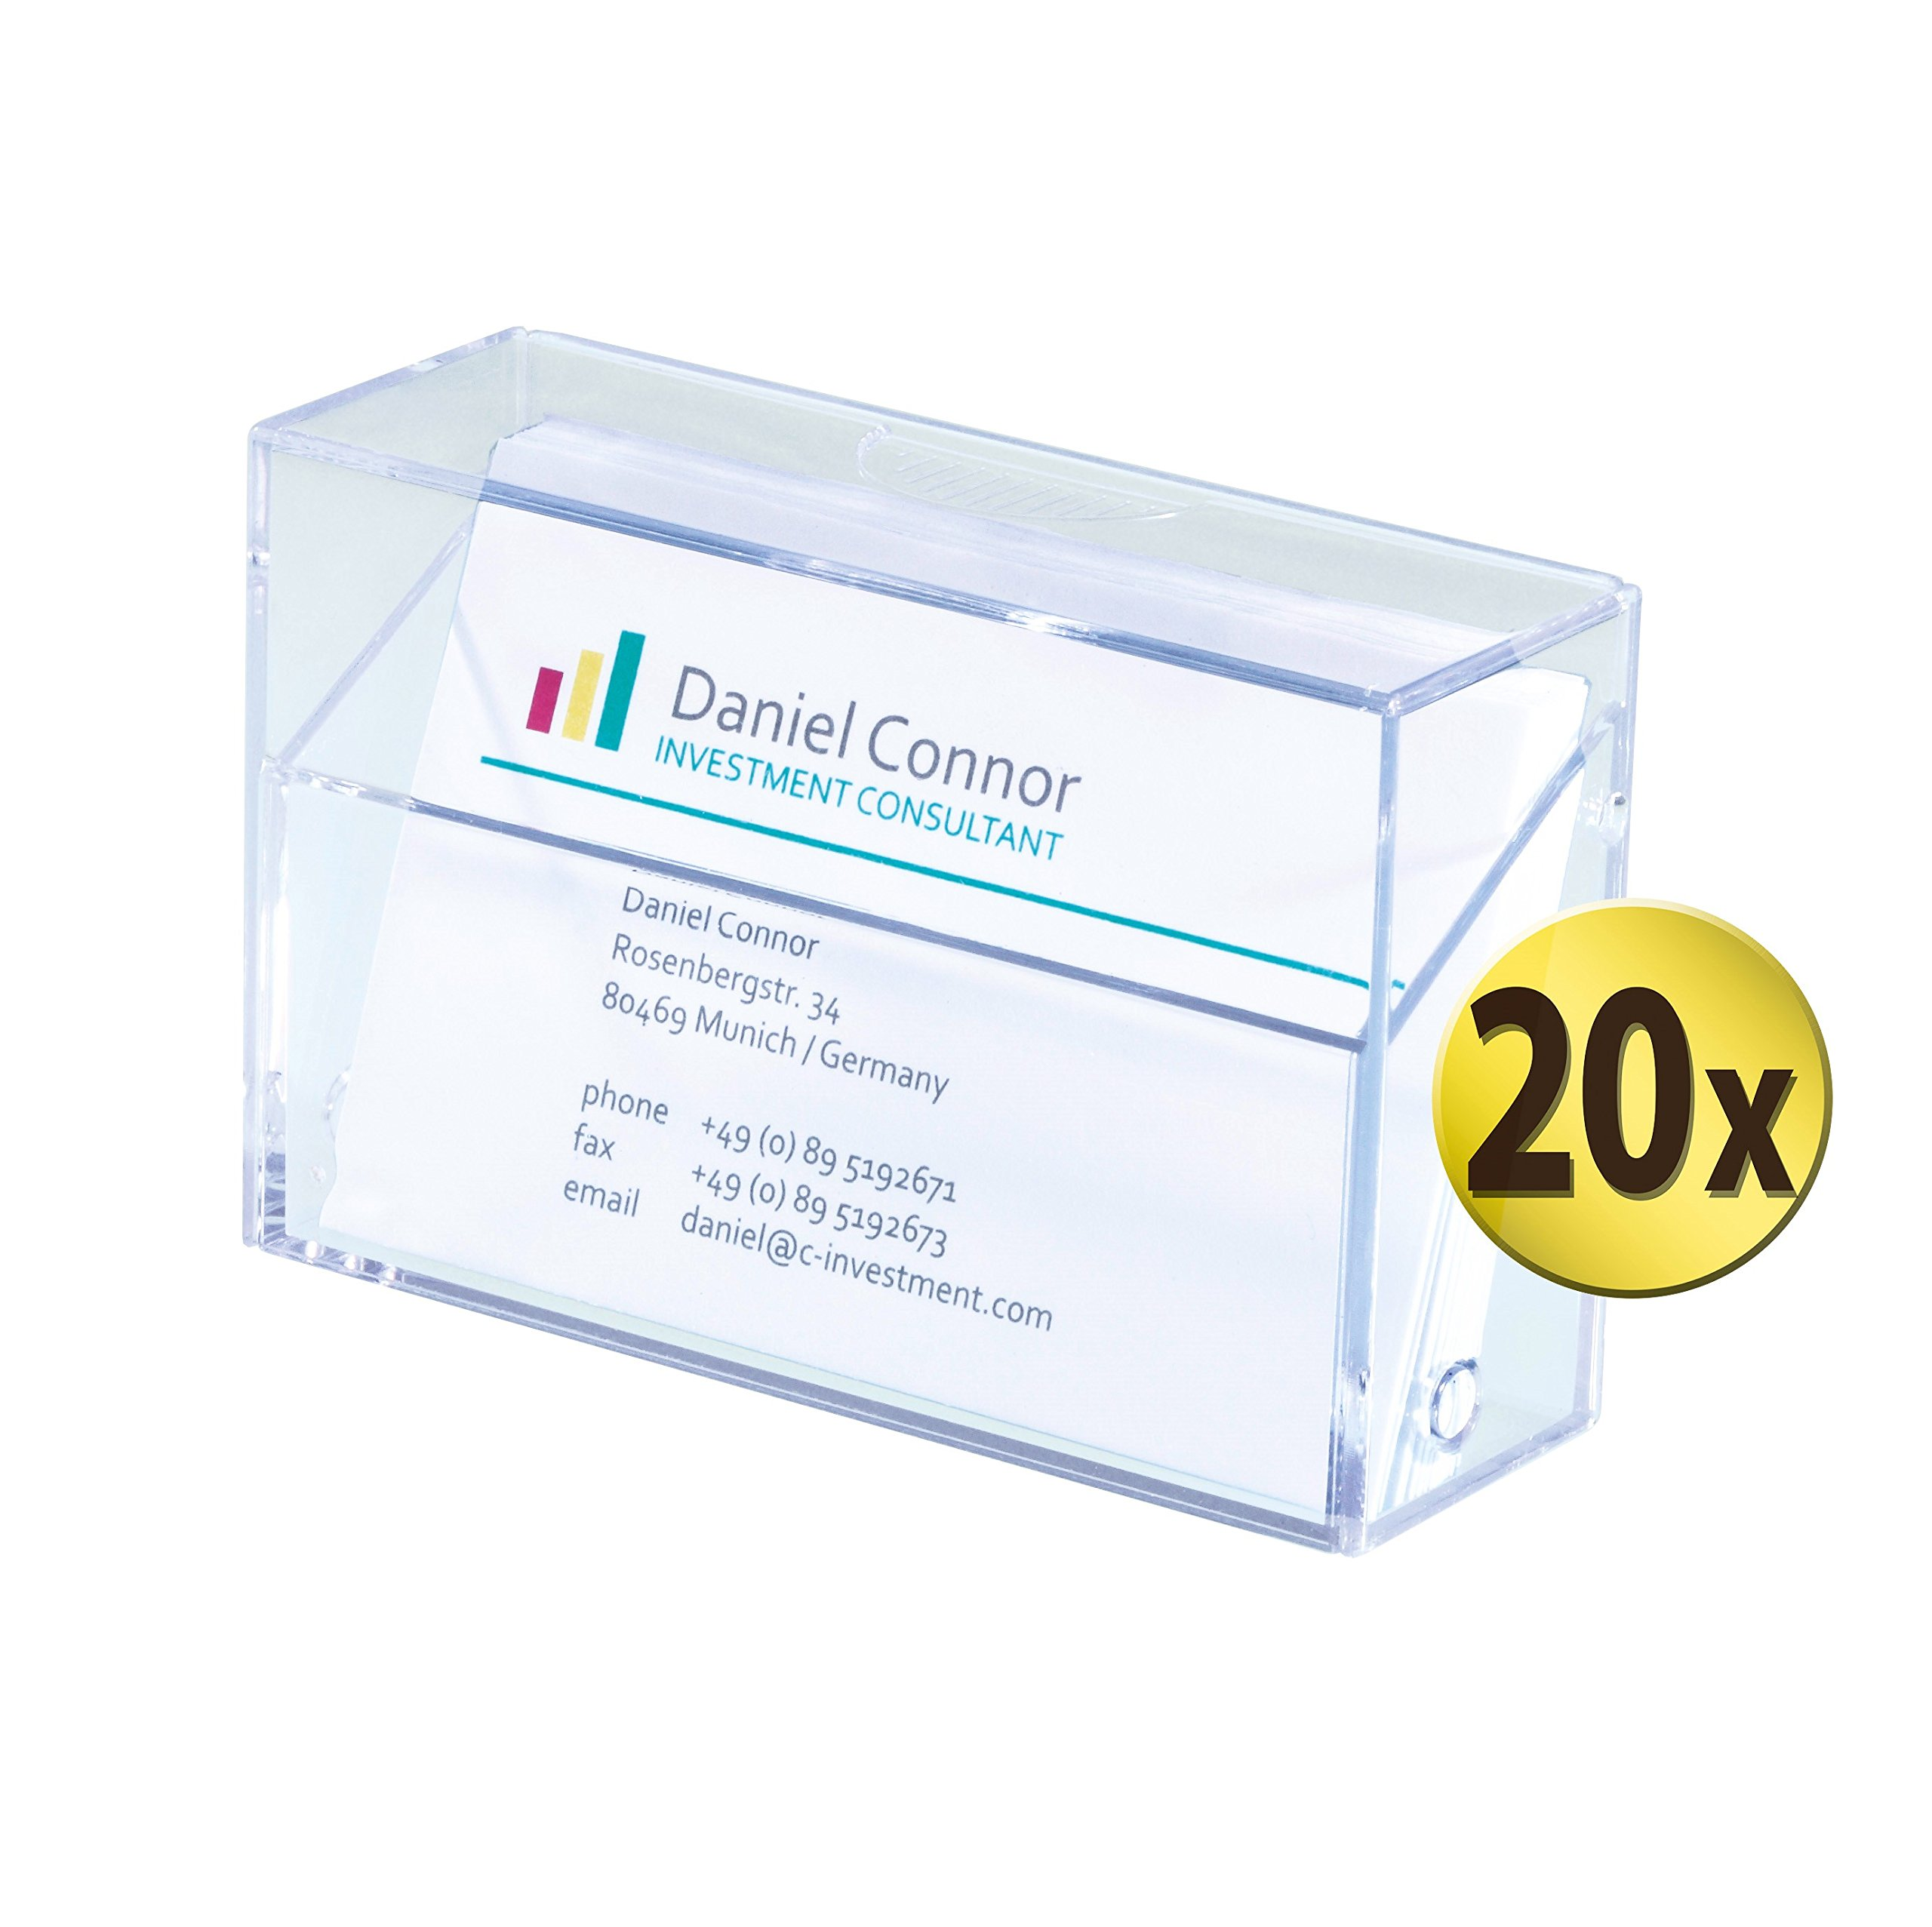 Sigel GmbH VA110/20 Business Card Box for 100 Cards 86 x 56 mm Crystal Clear by Sigel